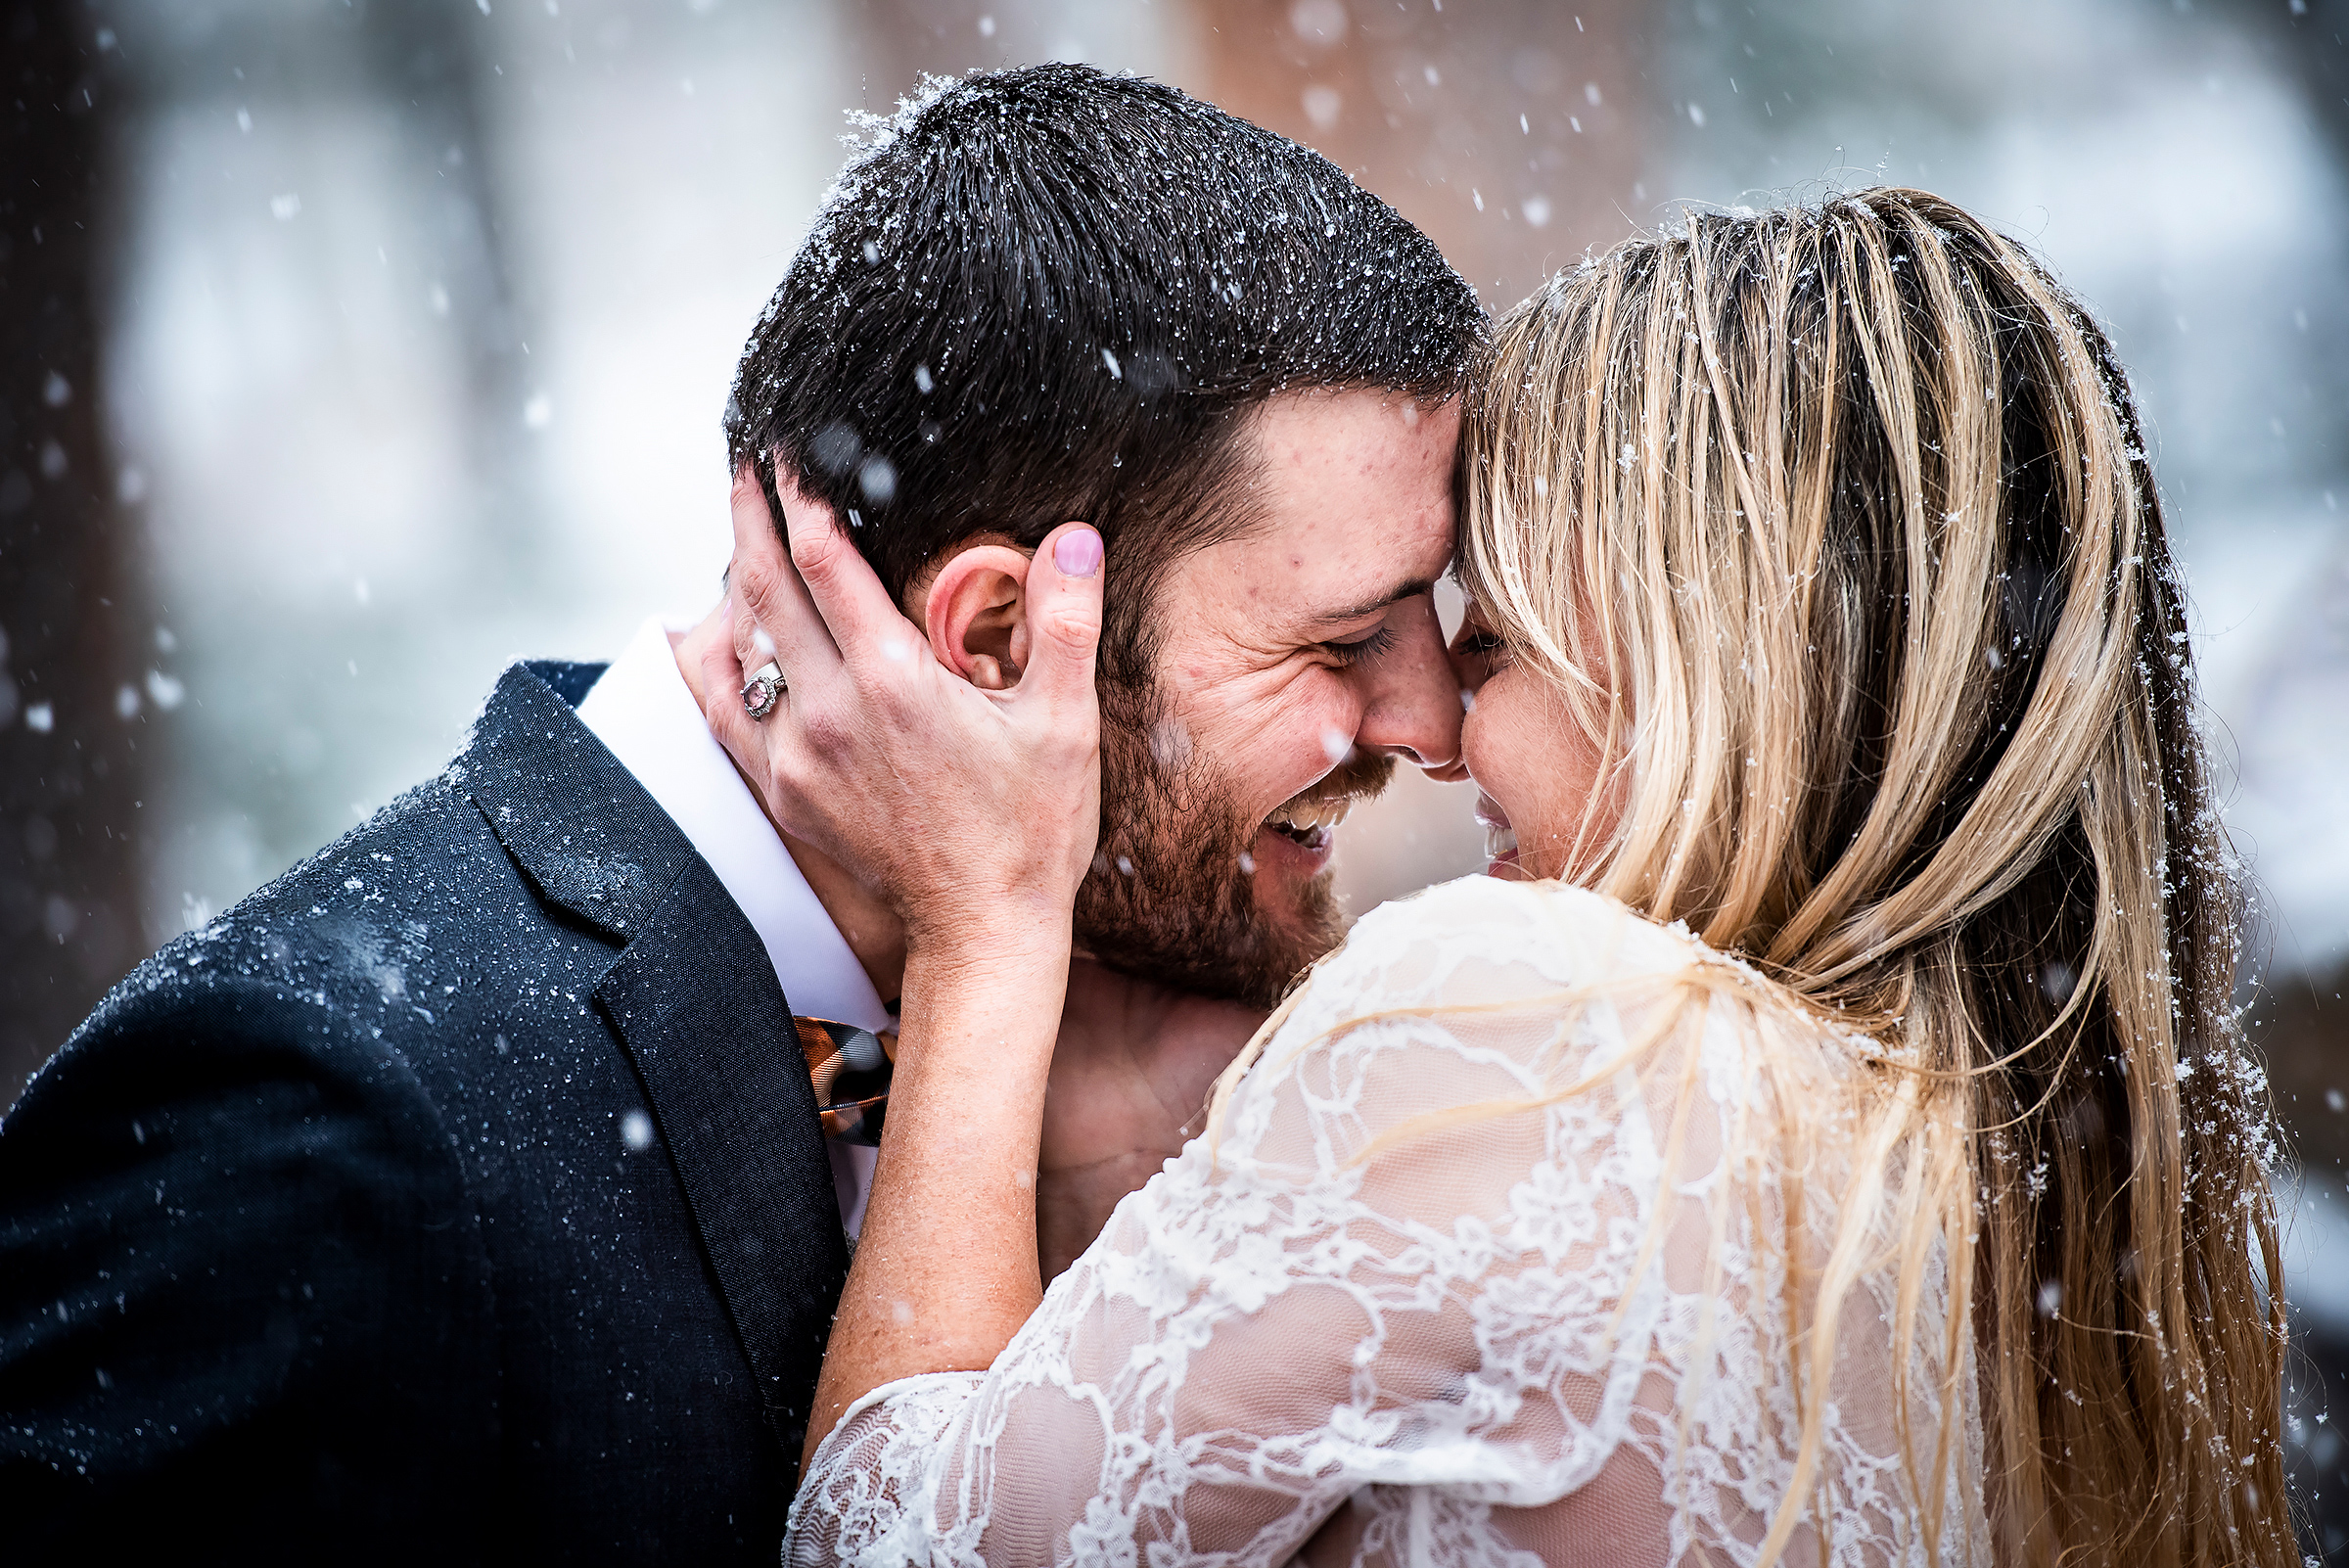 face-to-face-couple-in-falling-snow-j-la-plante-photo_0.jpg